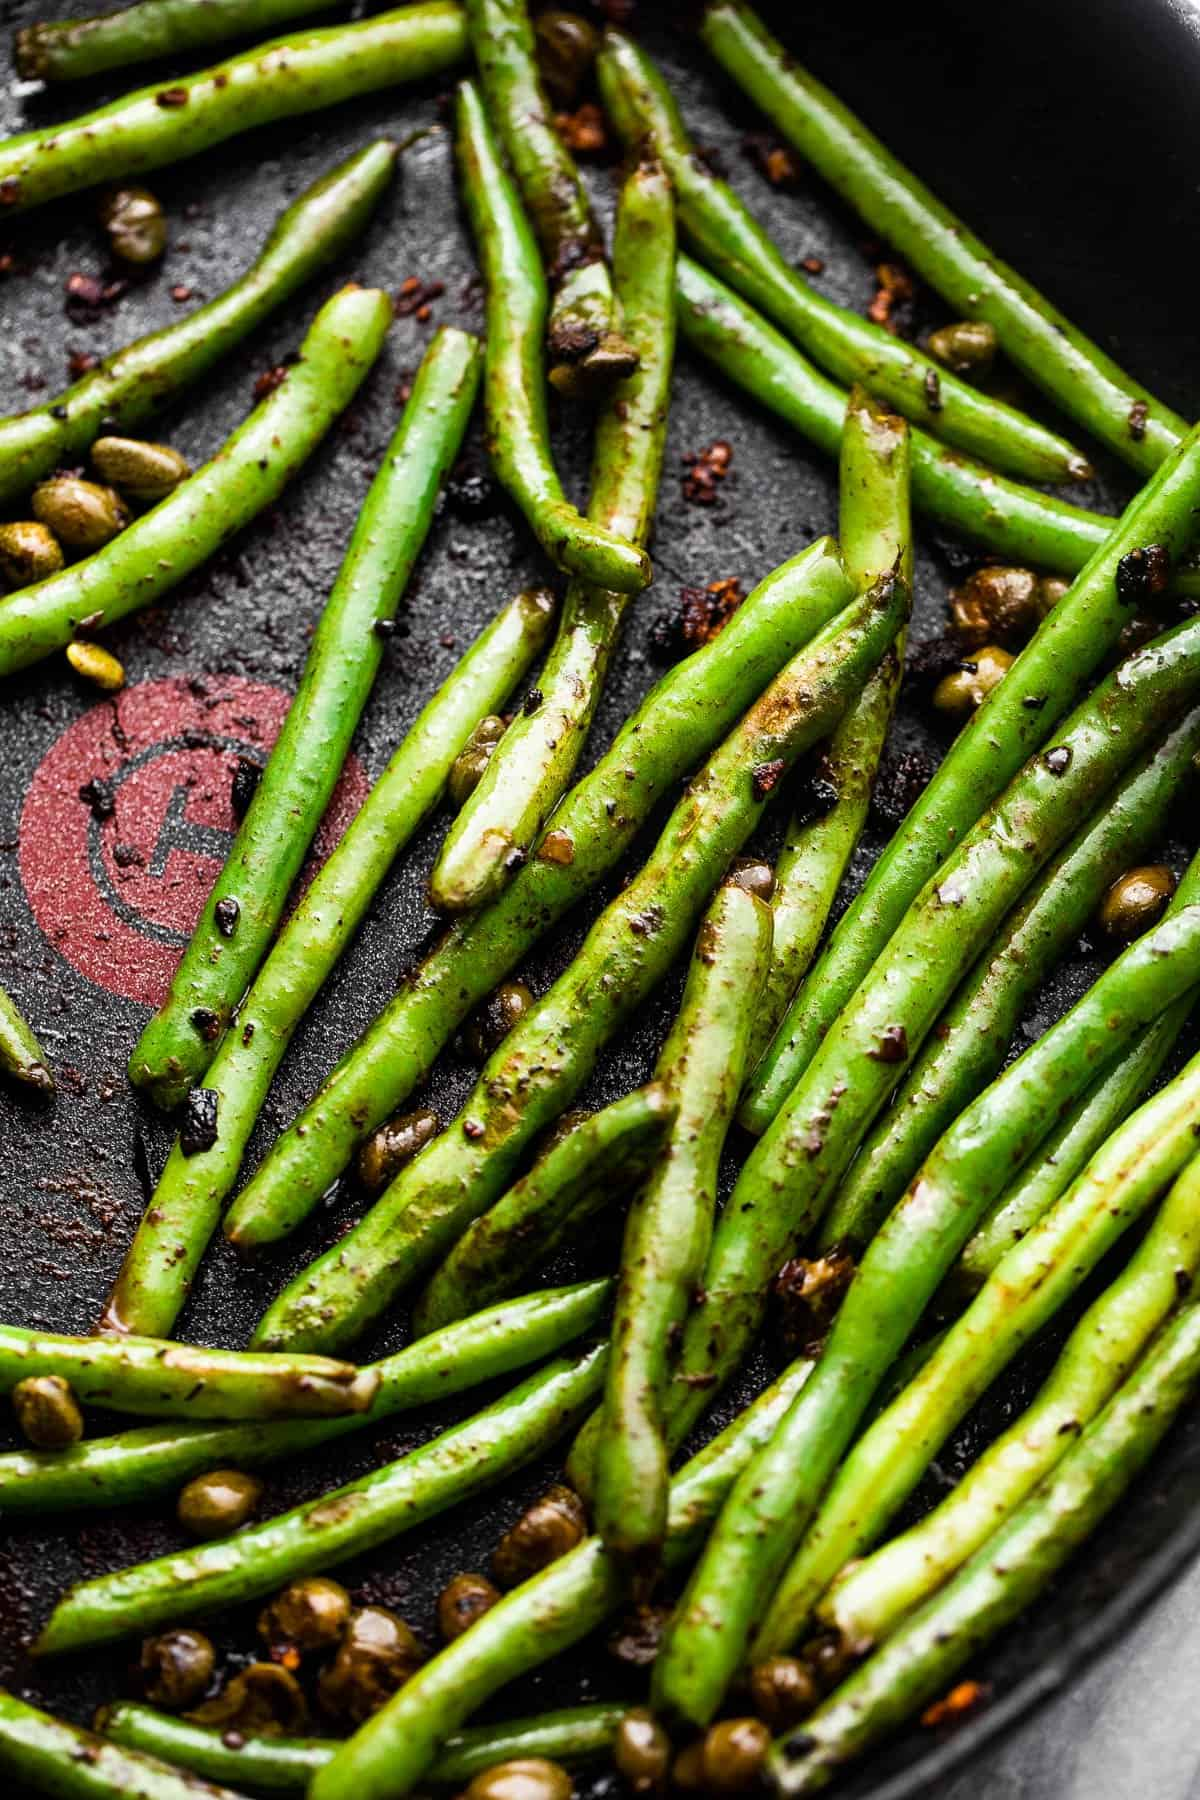 cooking green beans in a black skillet